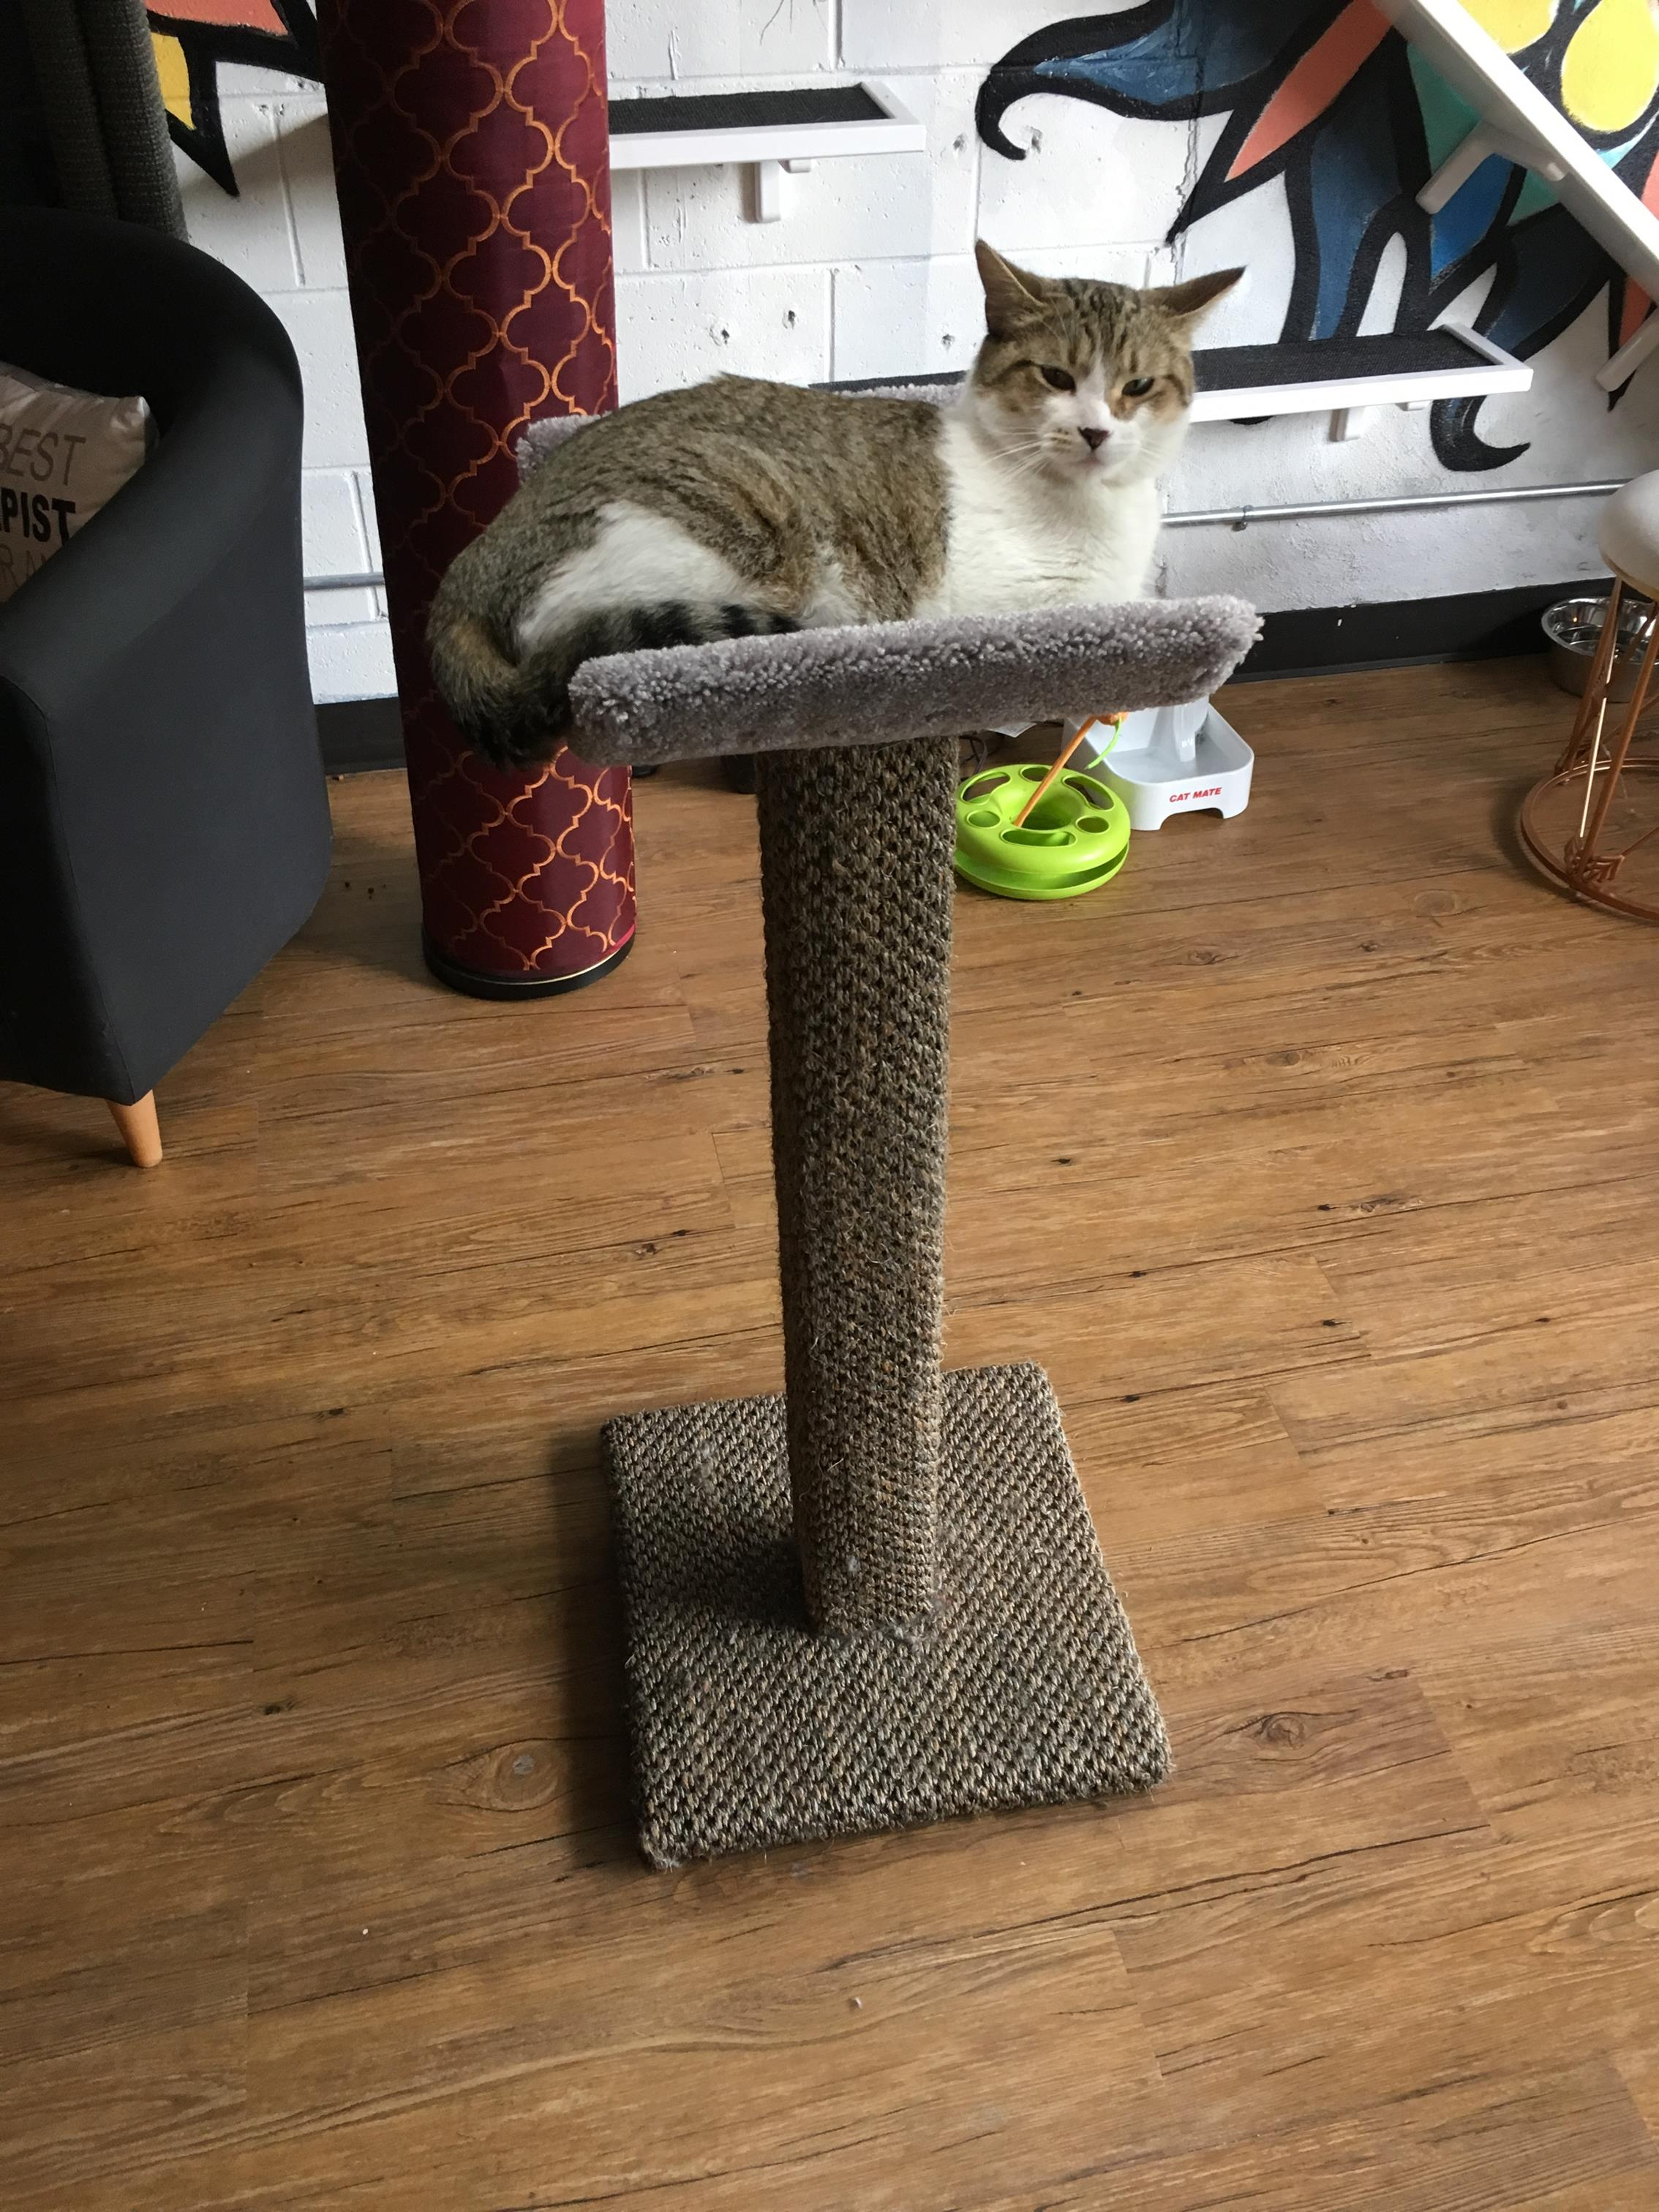 Wouldn't be complete without one of our signature scooped scratching posts.